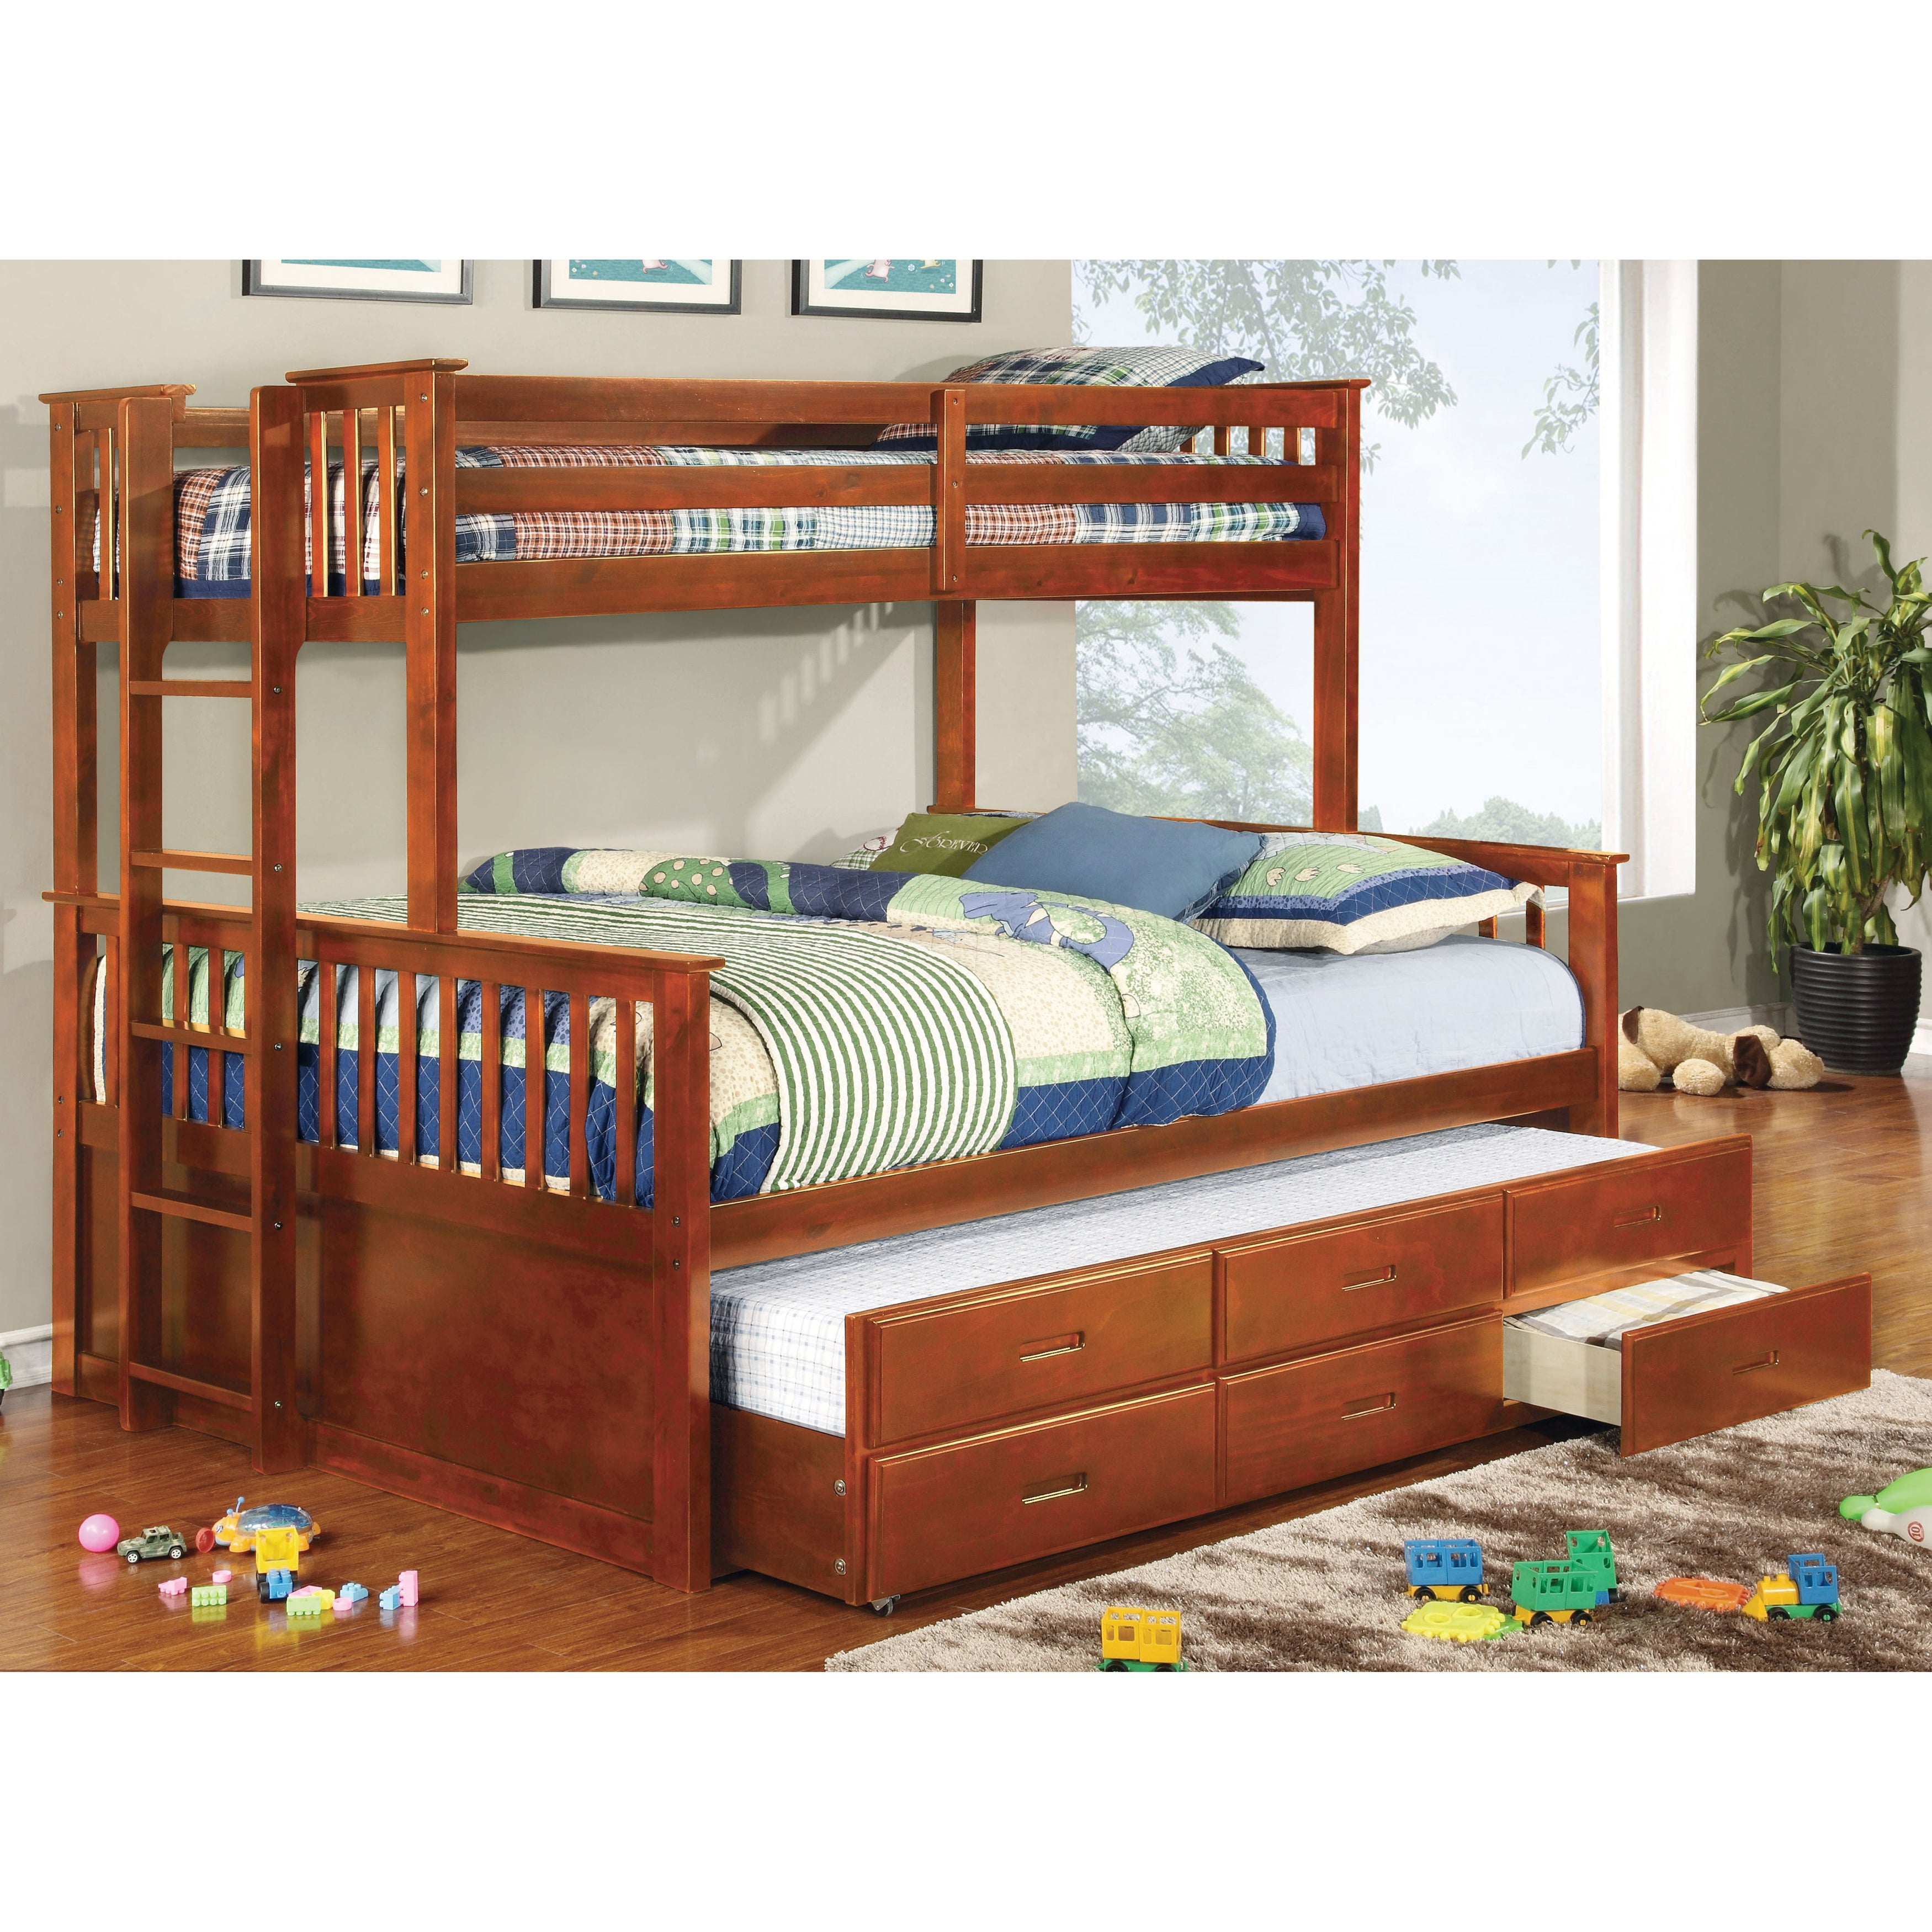 Shop Furniture Of America Rola Mission Twin Xl Queen Bunk Bed With